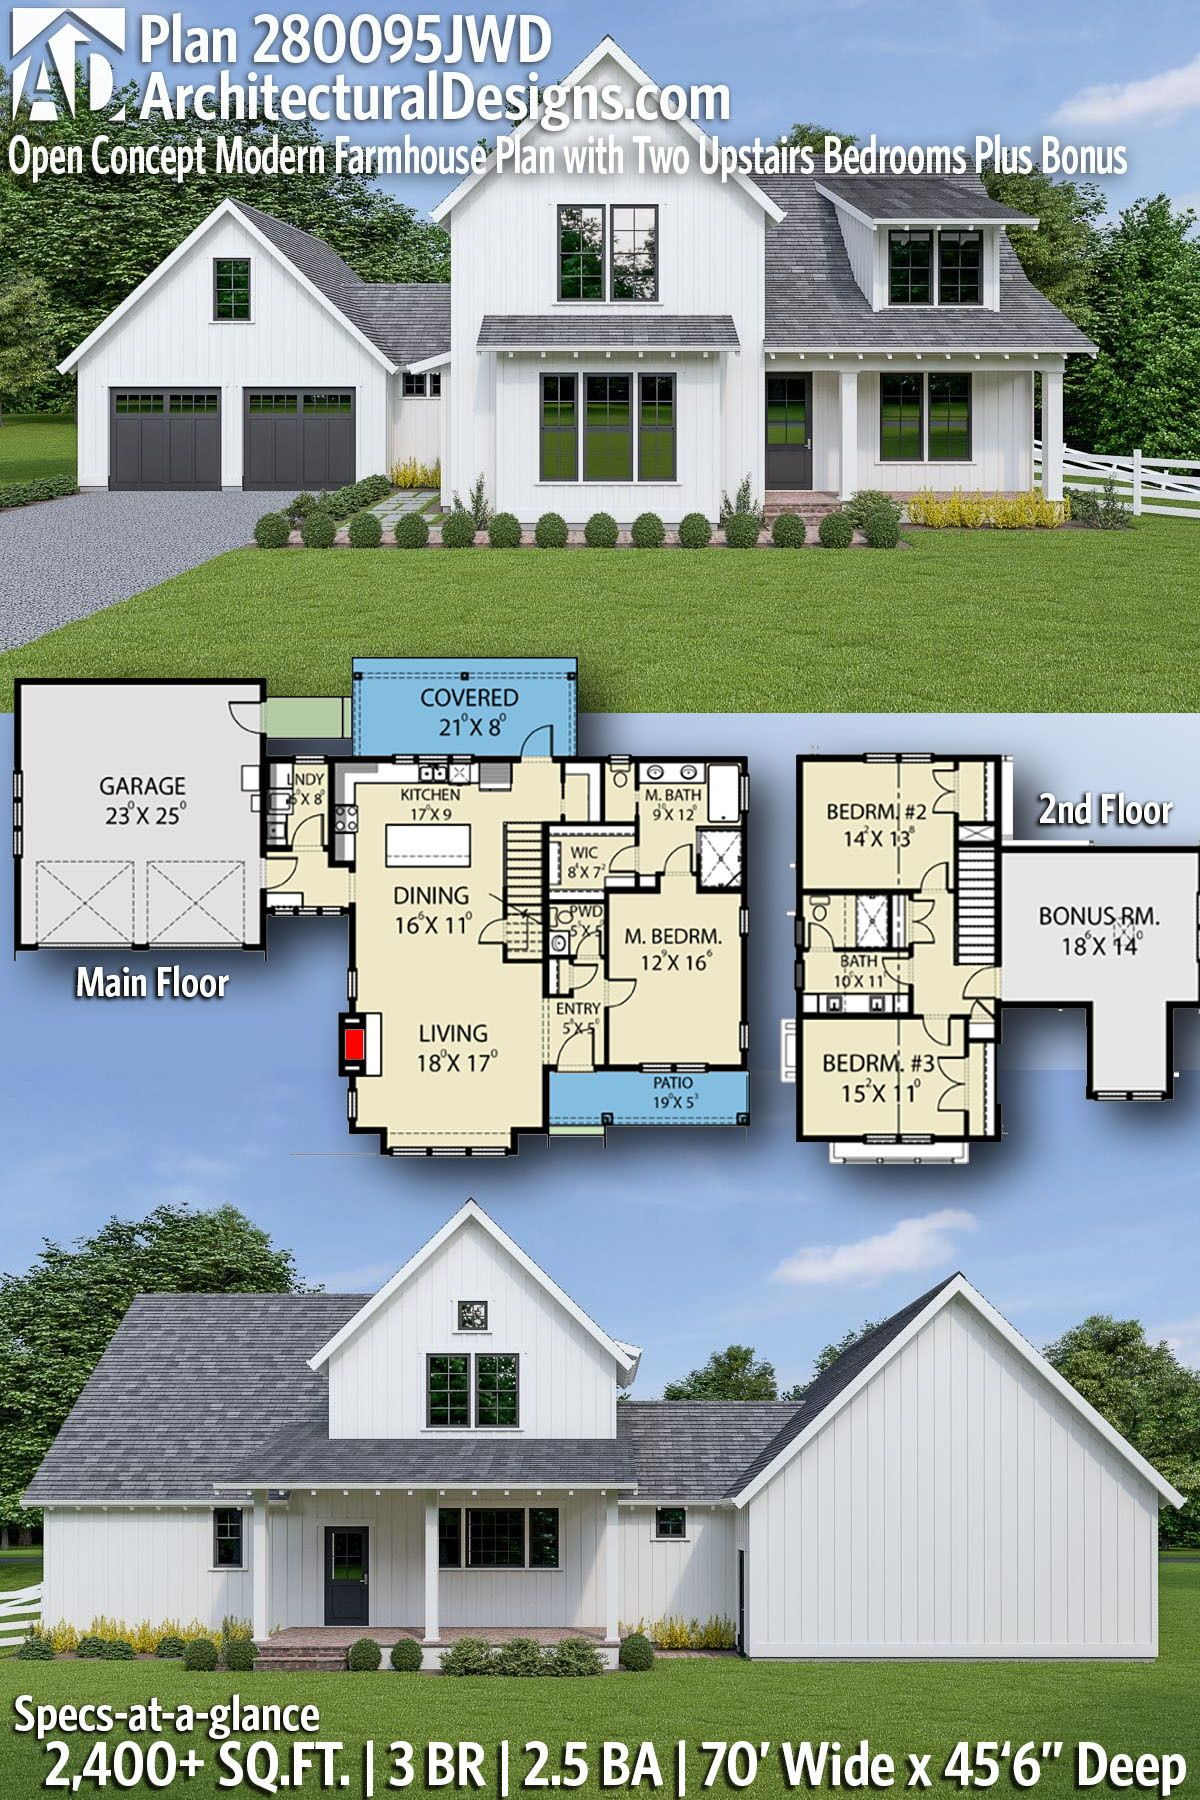 Adhouseplans Open Concept 3 Bed Modern Farmhouse Plan 280095jwd W Two Upstairs Bedrooms Plus Bonu In 2020 Modern Farmhouse Plans Farmhouse Plans House Plans Farmhouse